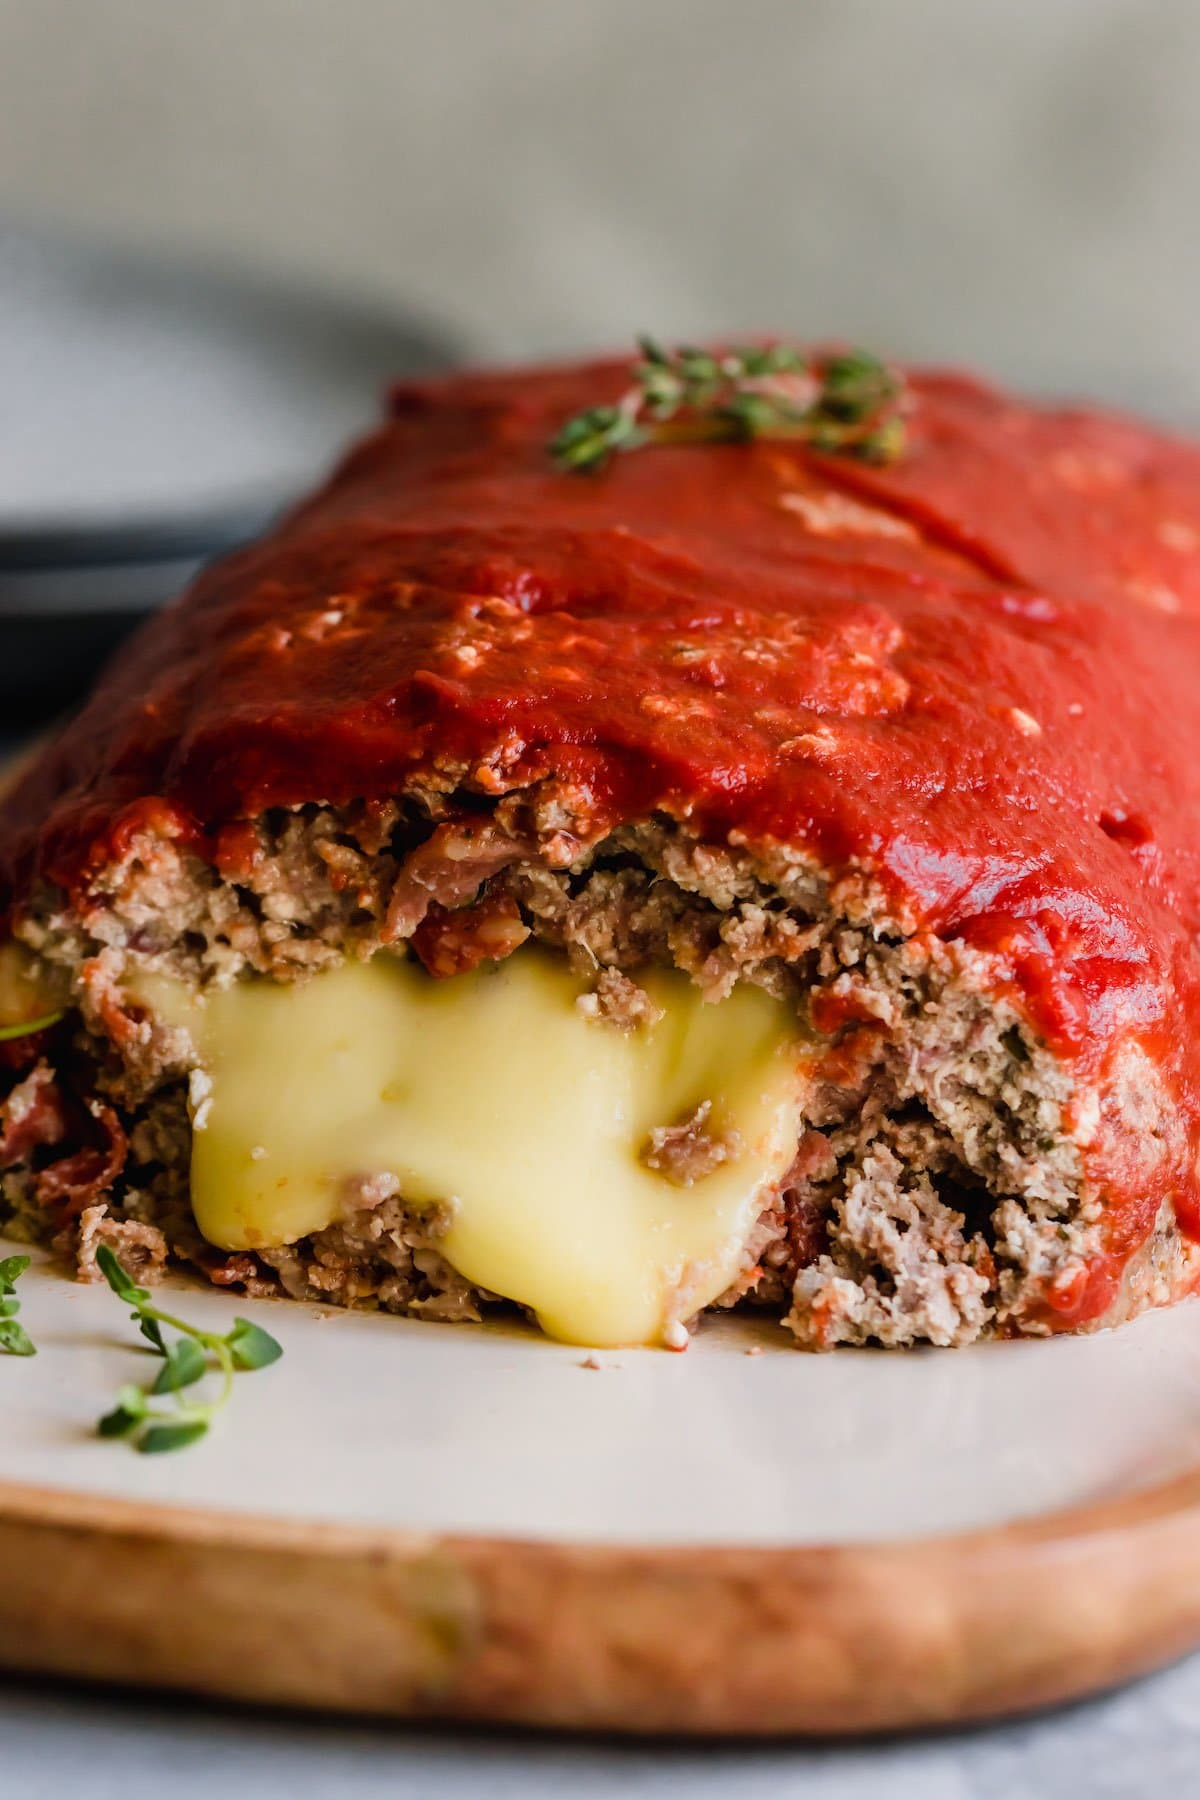 Pizza meatloaf filled with mozzarella cheese.